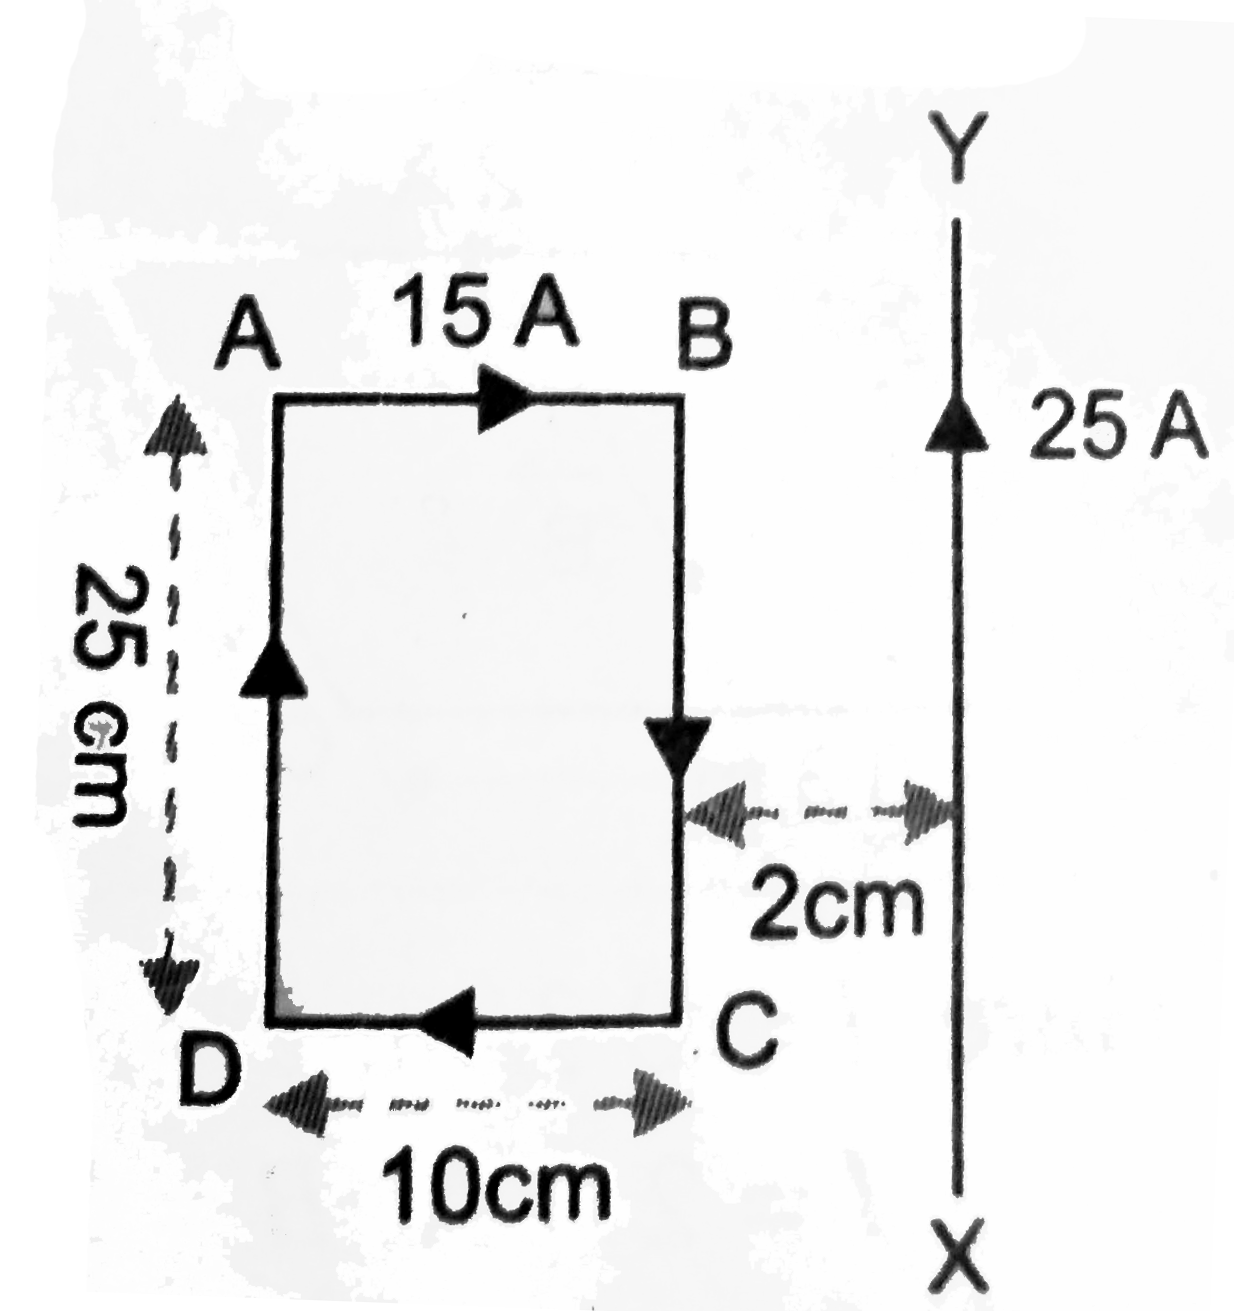 Figure Shows A Rectangular Current Carrying Loop Placed 2cm Away